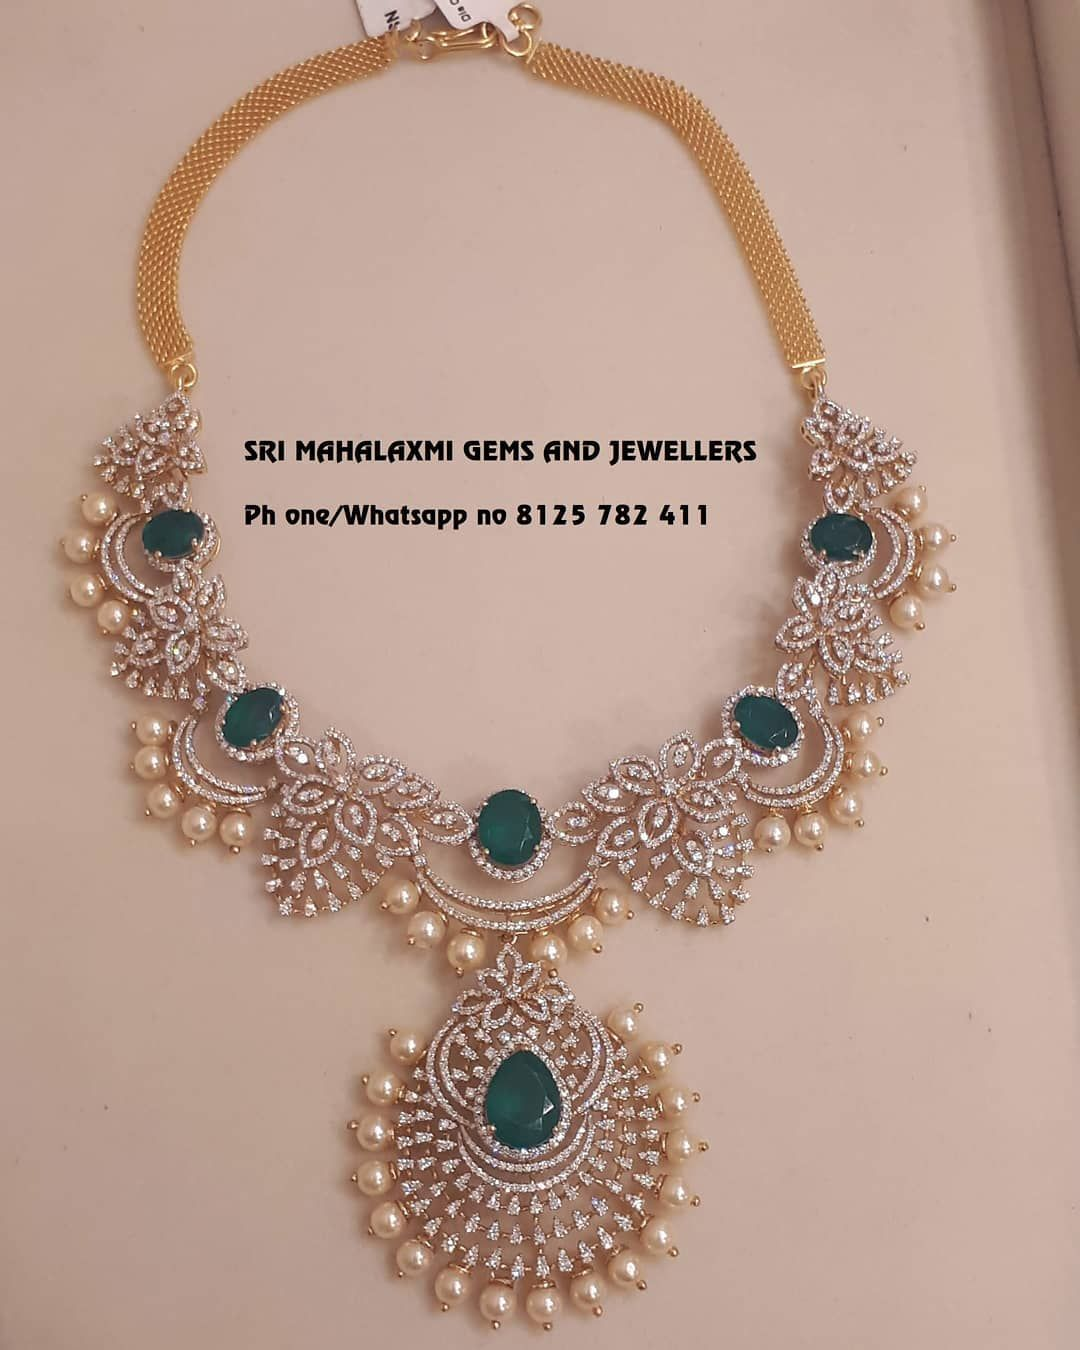 25++ Best prices on jewelry near me viral